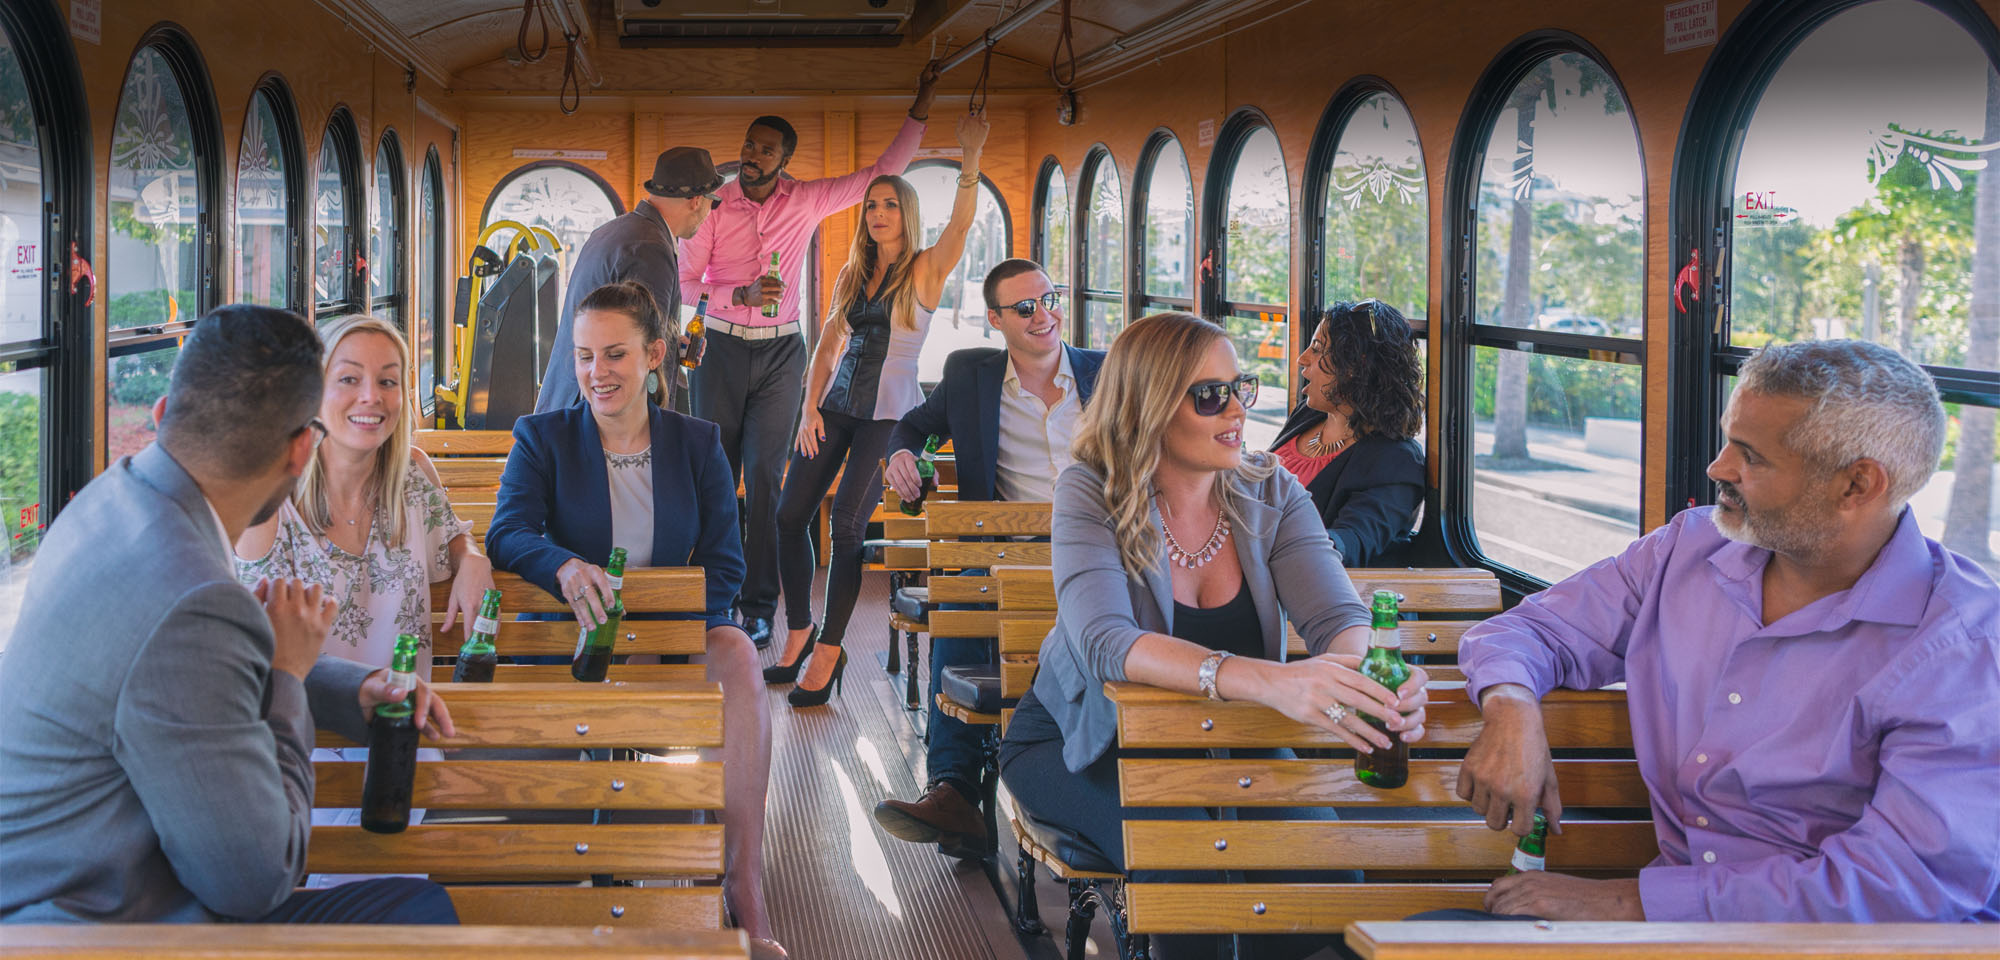 Clearwater Jolley Trolley for Corporate Events